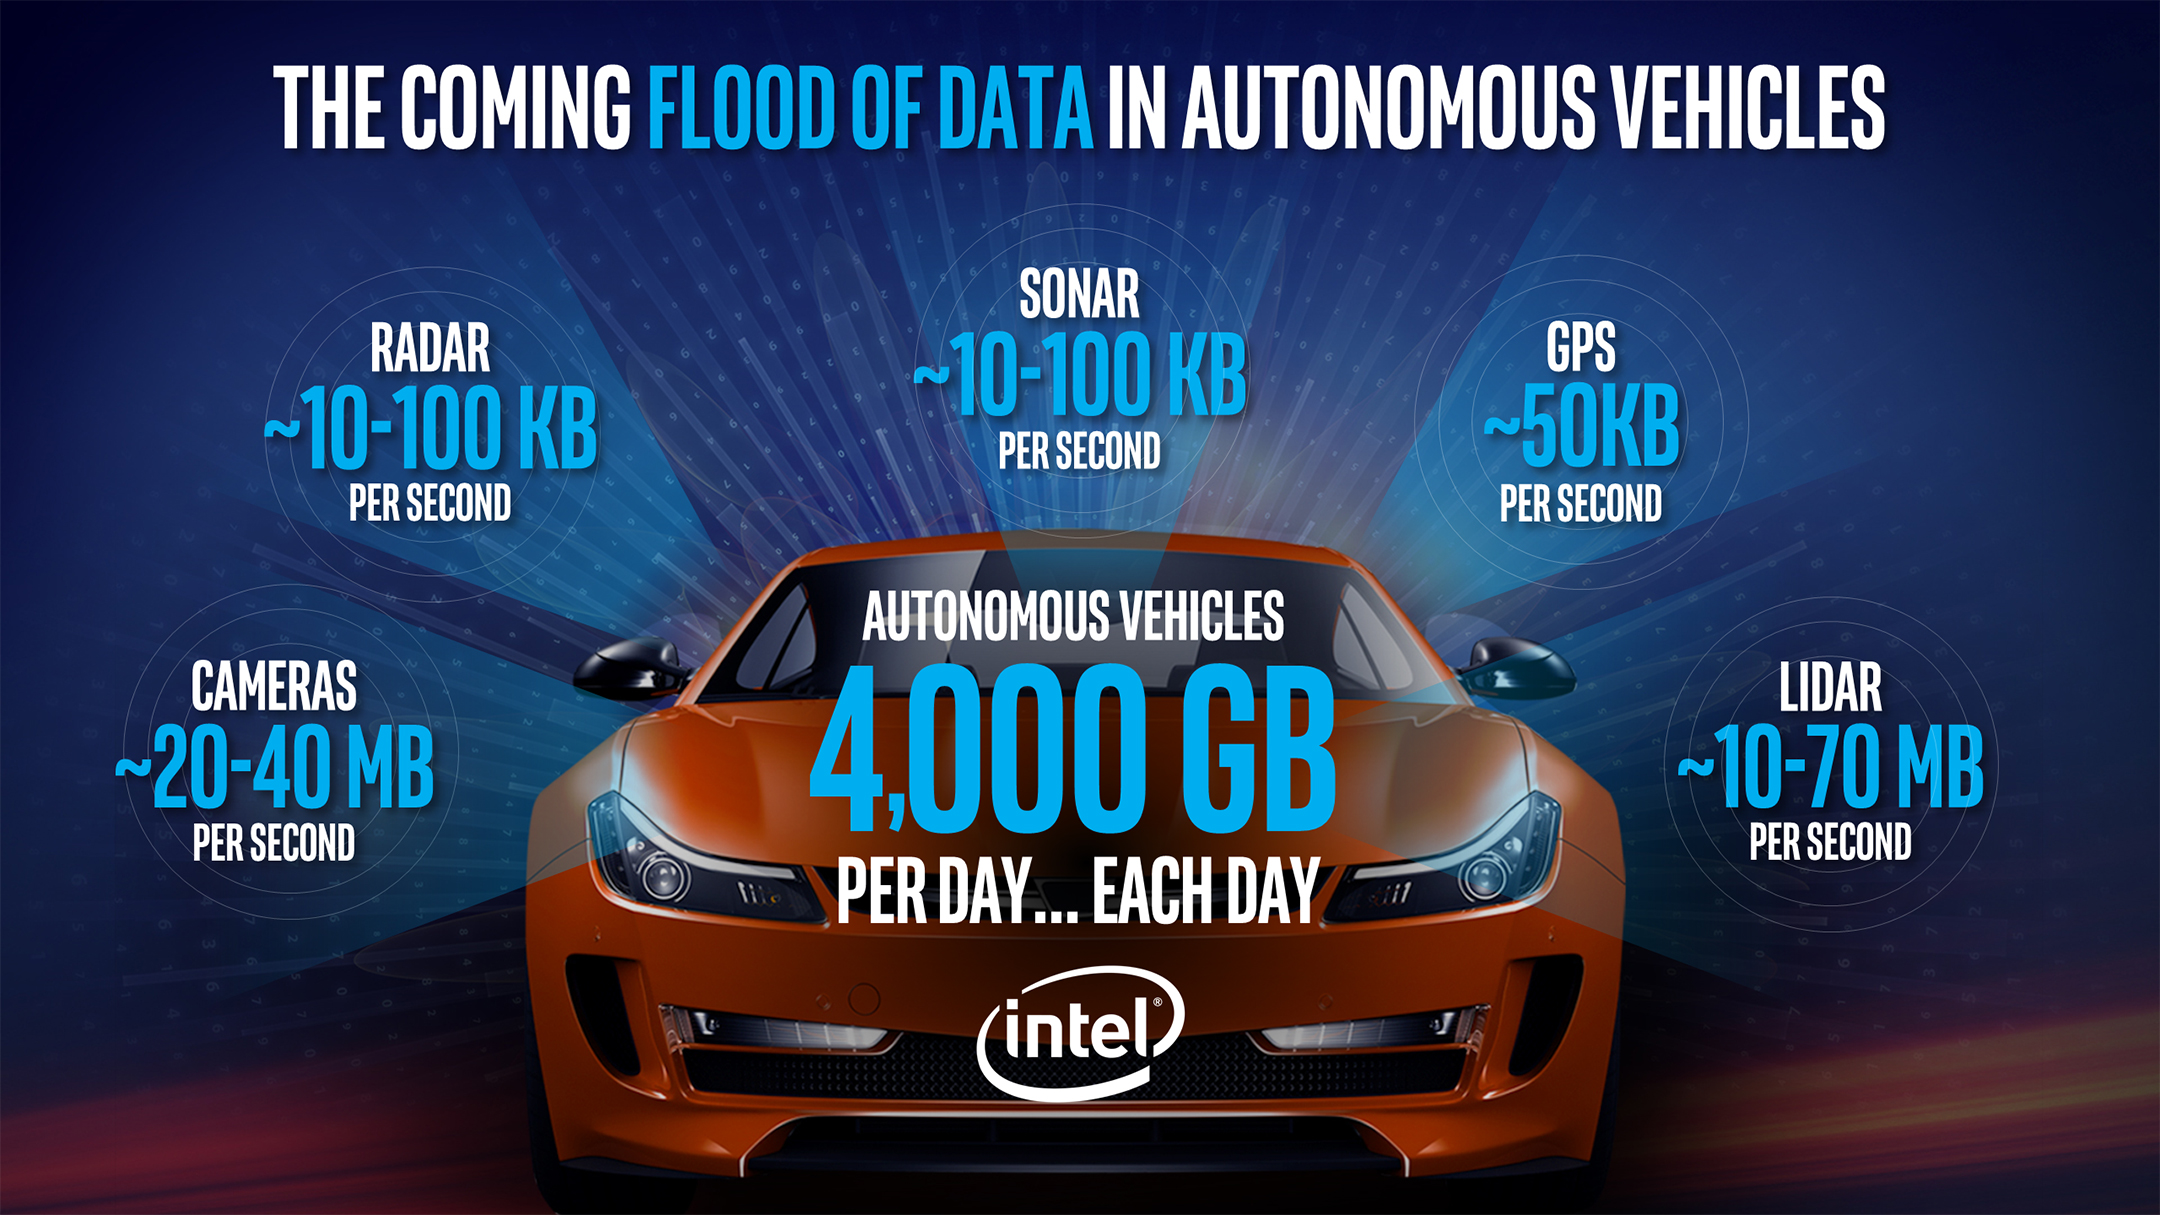 Intel data automobility - 2017 - infographic